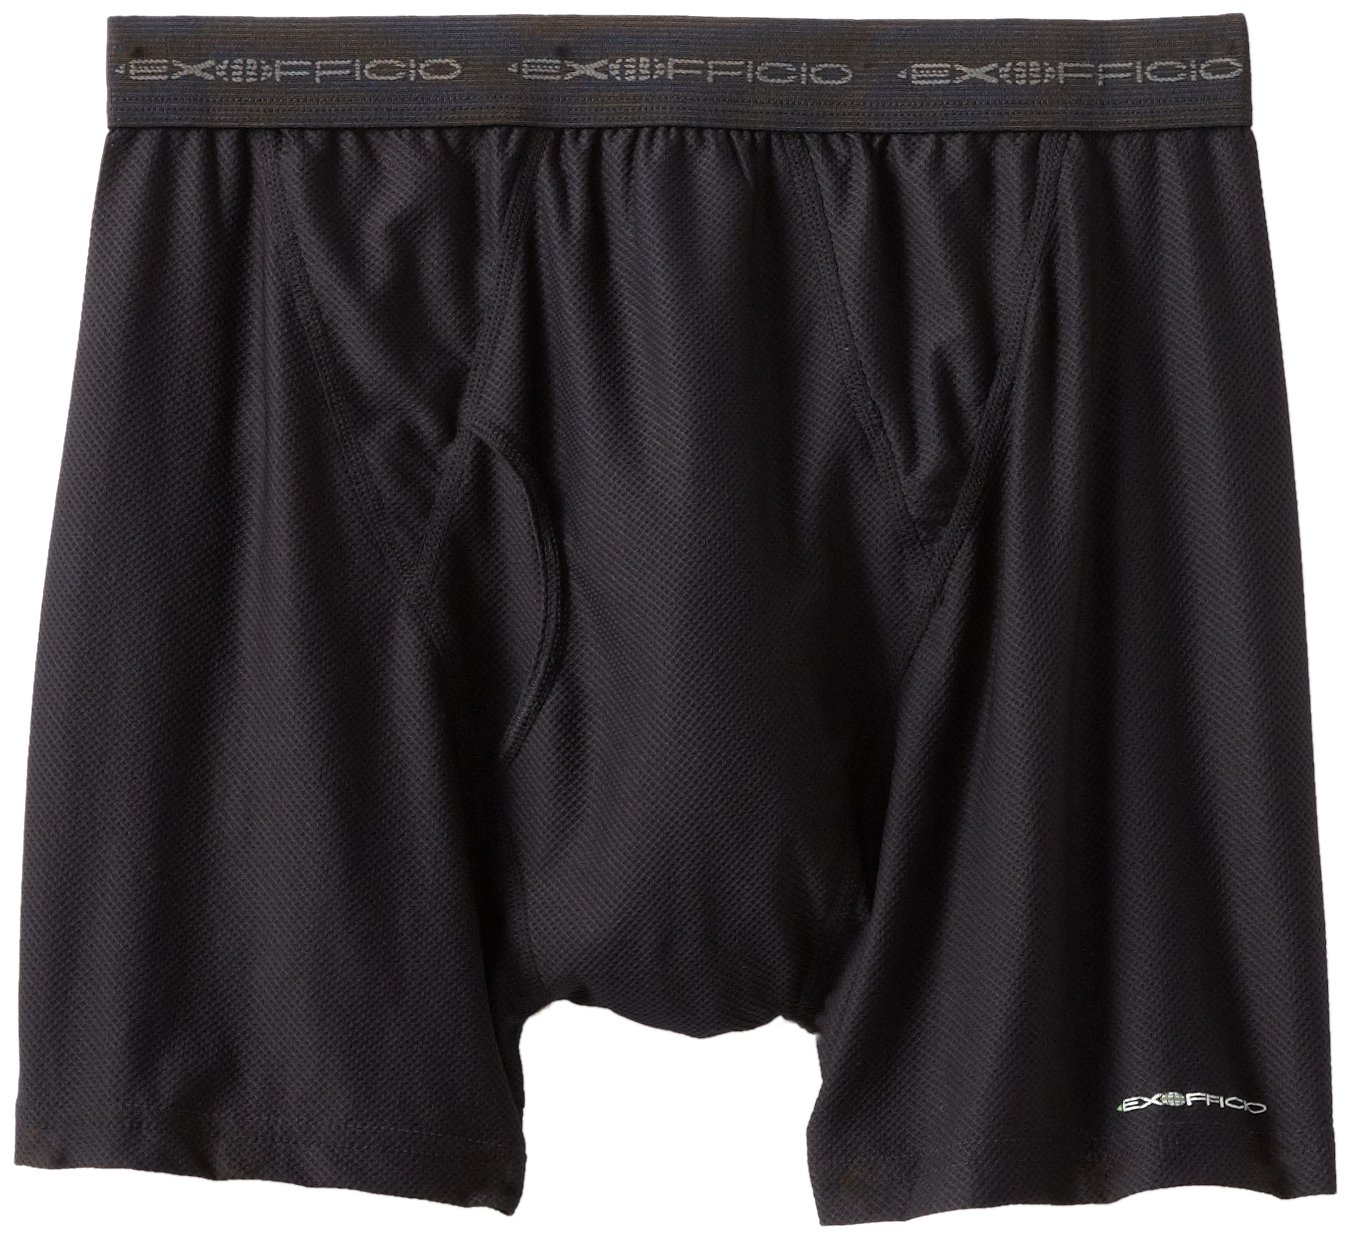 ExOfficio Men's Give-N-Go Boxer Brief,Black,Medium $16.97